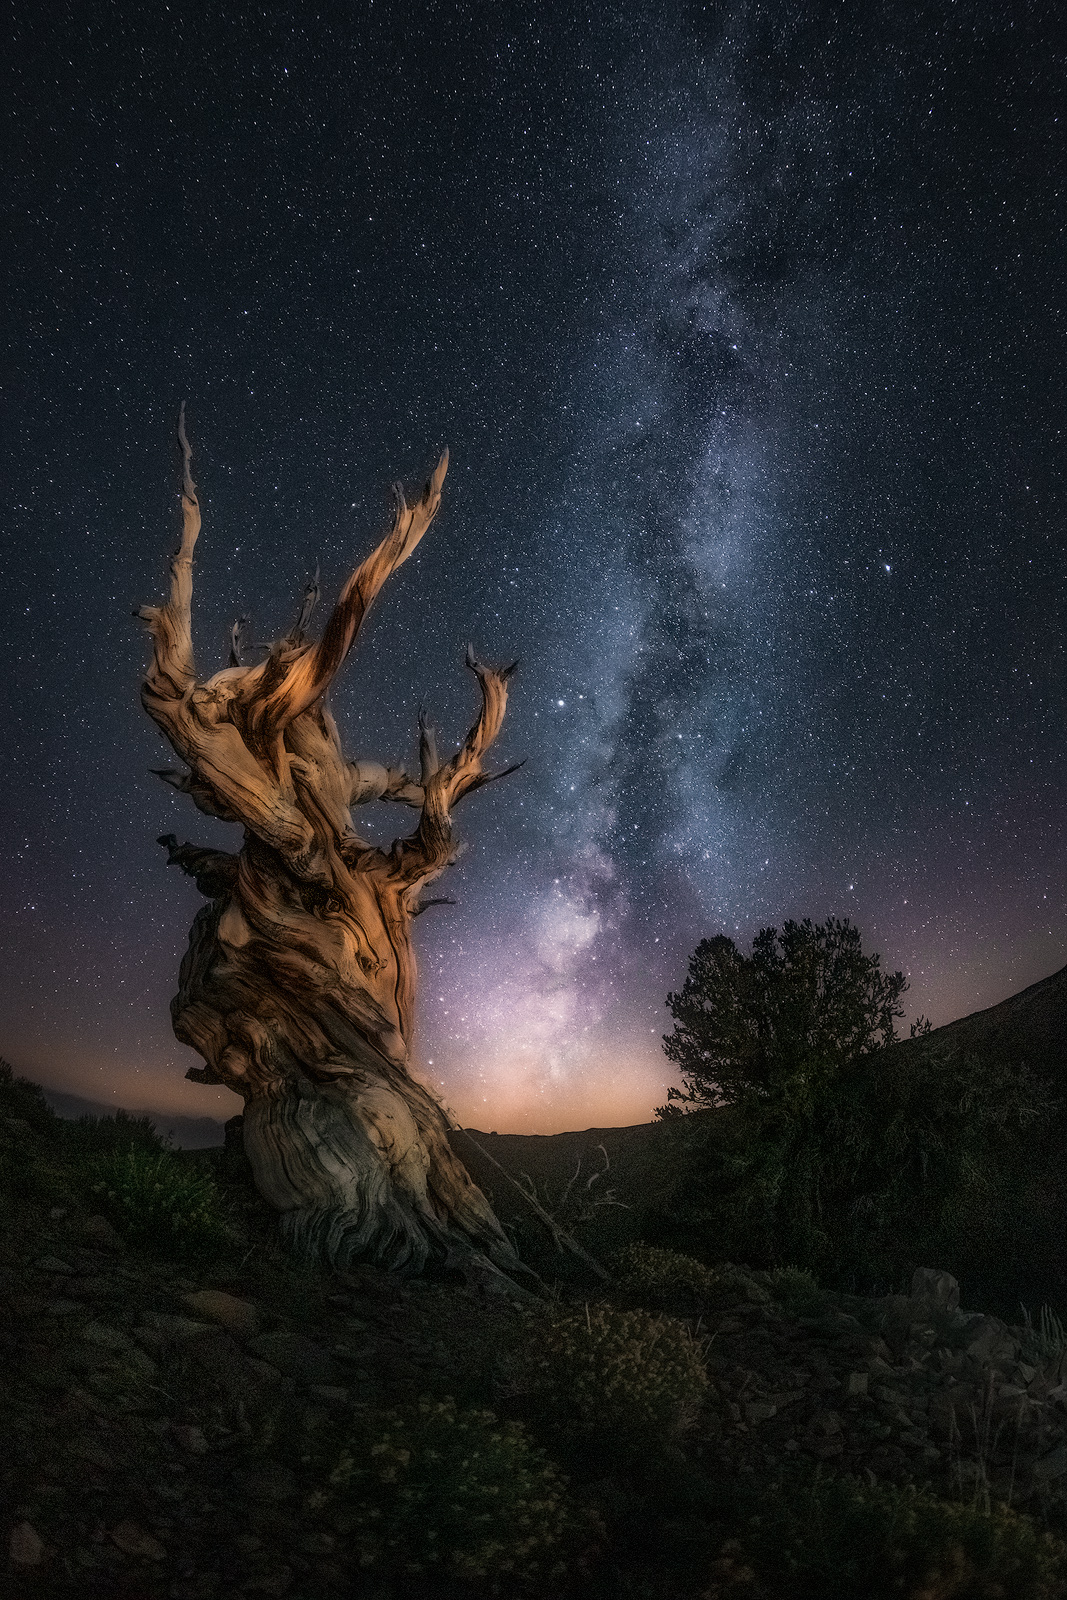 A beautiful Milky Way display behind an ancient twisted tree.